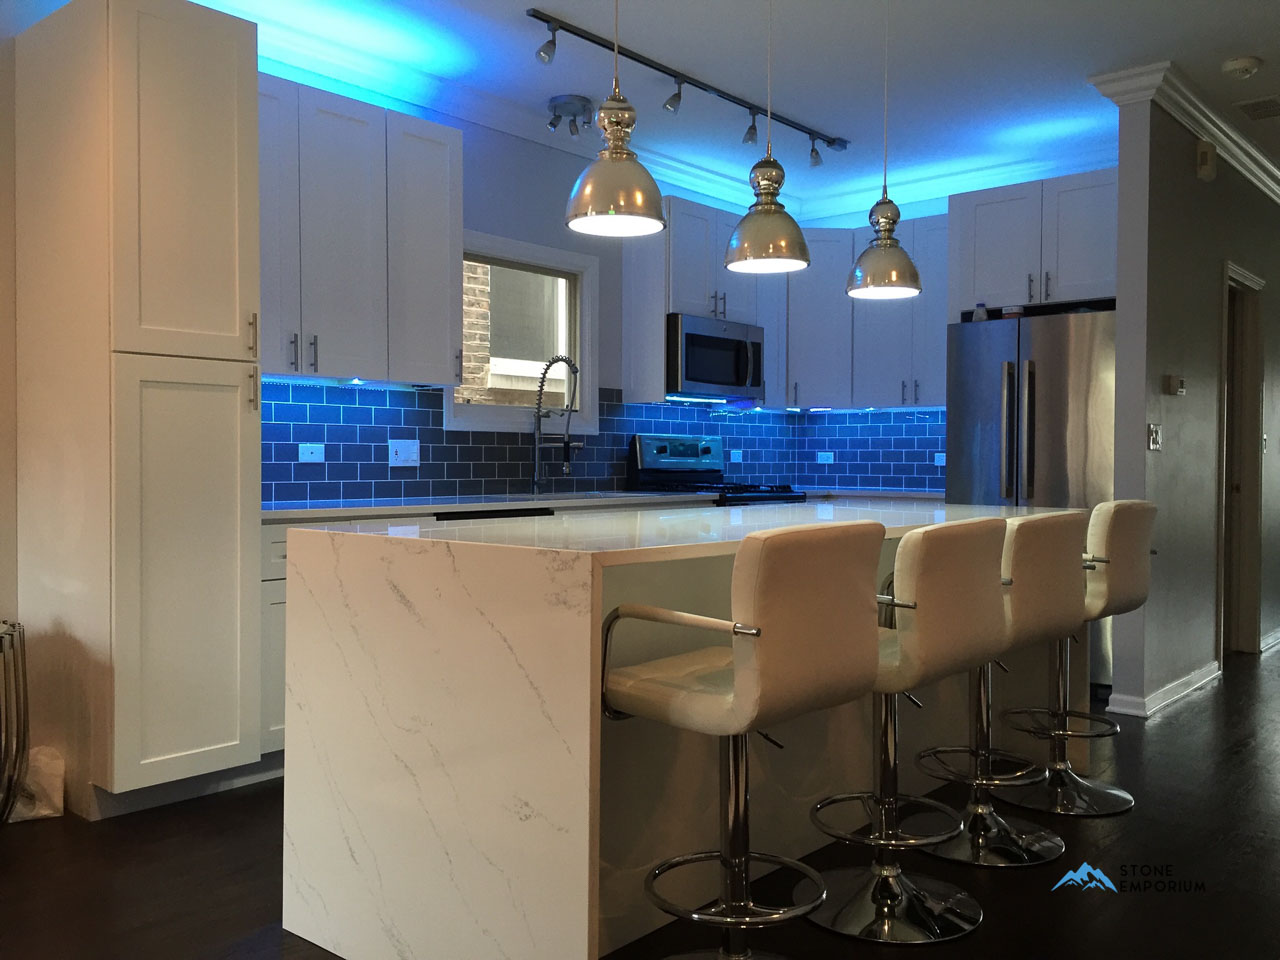 White Quartz Countertop from Stone Emporium – Affordable Quartz Chicago